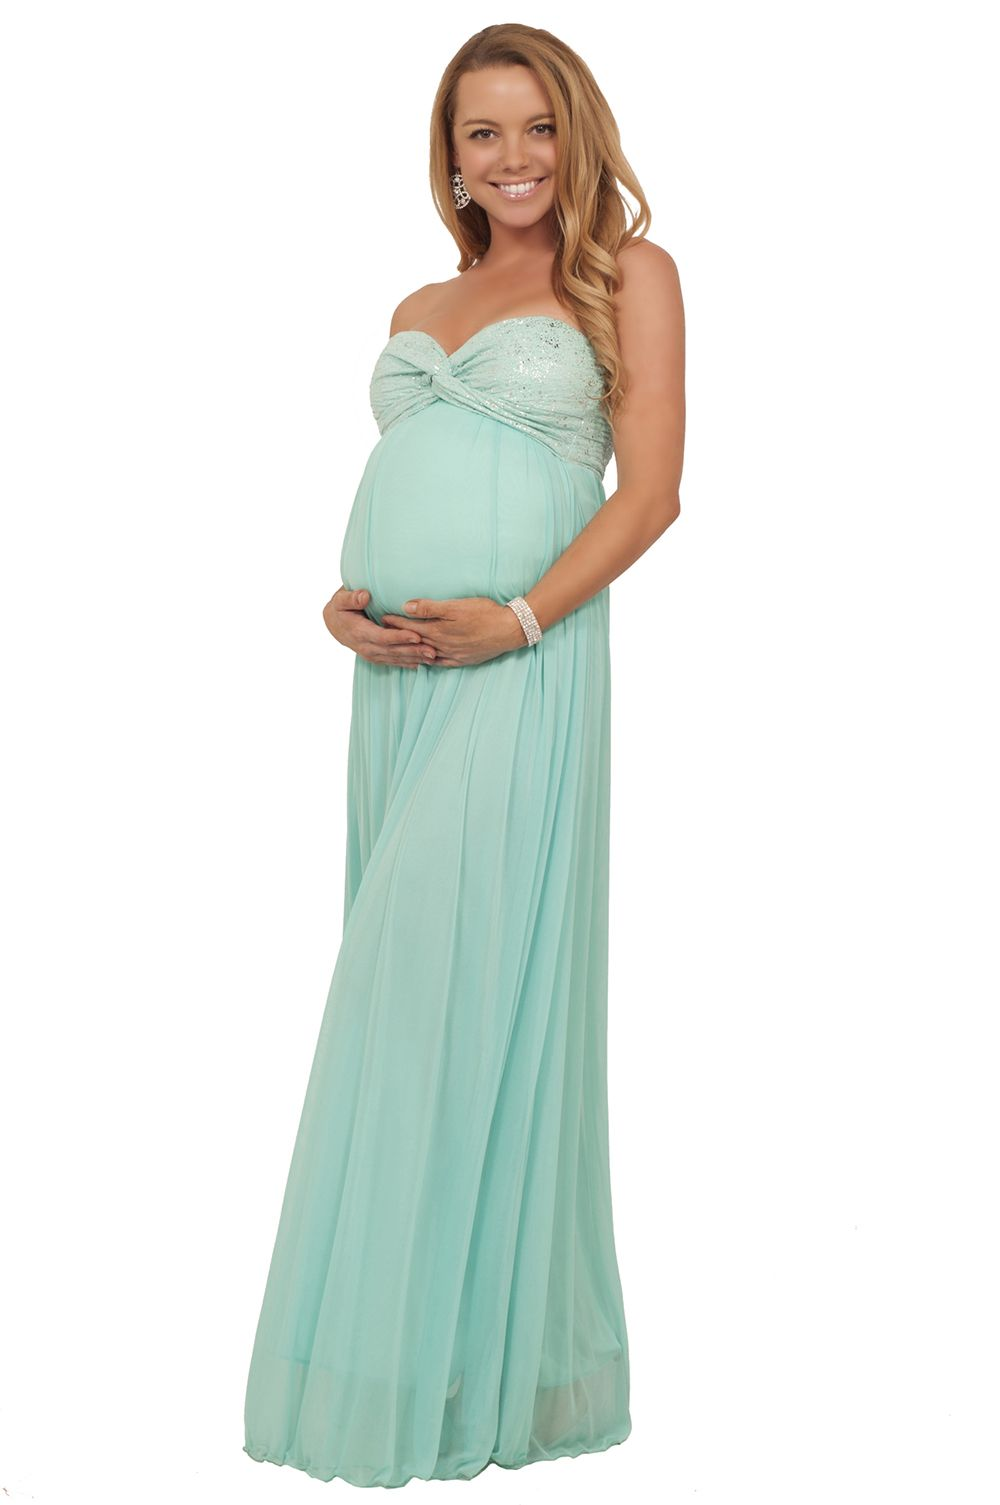 Maternity dresses for special occasions dressesblog 29 my maternity dresses for special occasions dressesblog 29 ombrellifo Images